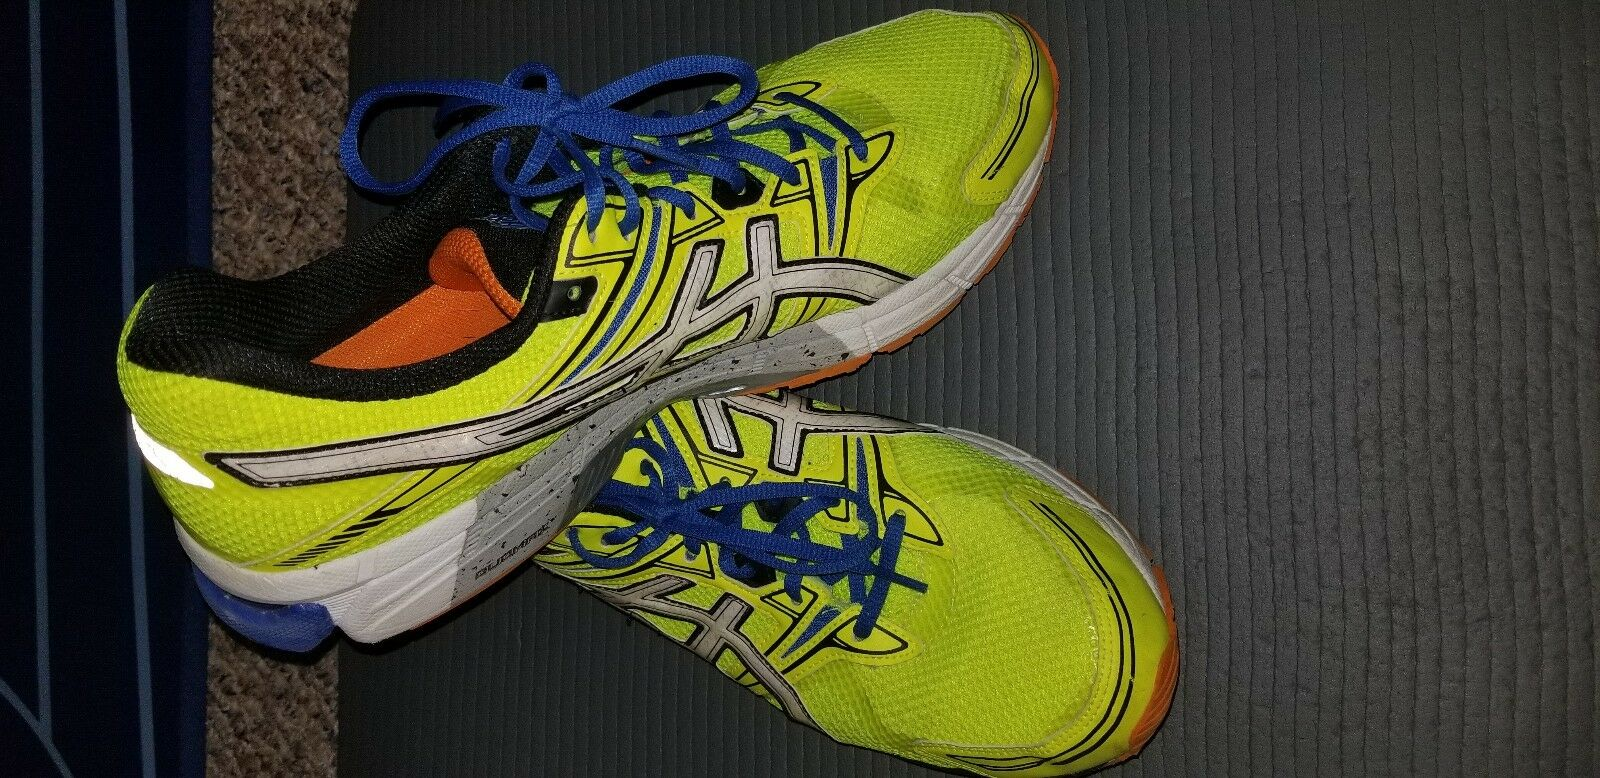 Men's ASICS GEL-GT-1000 Highlighter Running shoes-  Excellent Cond sz 14